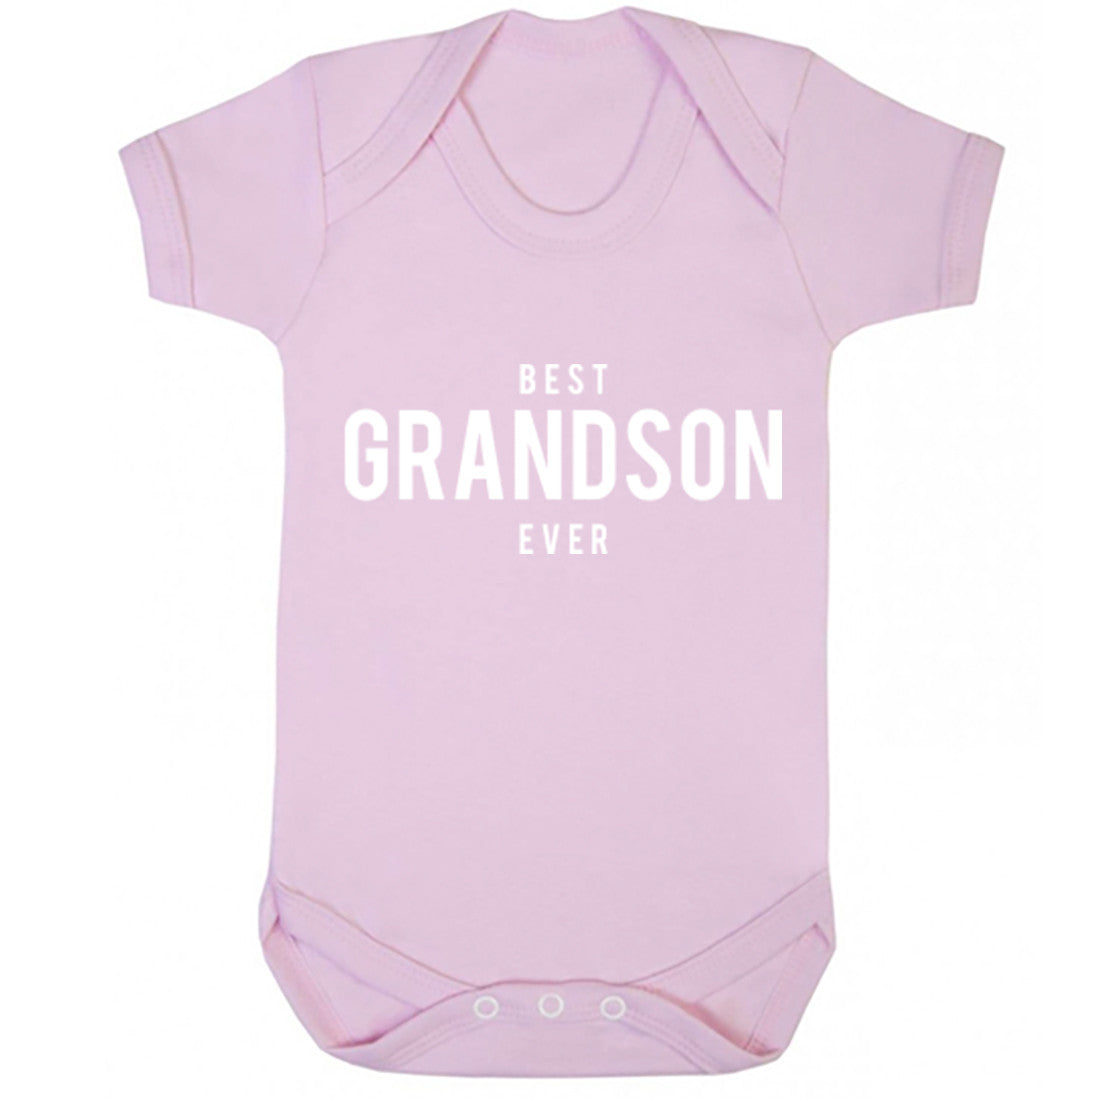 Best Grandson Ever Baby Vest K1482 - Illustrated Identity Ltd.